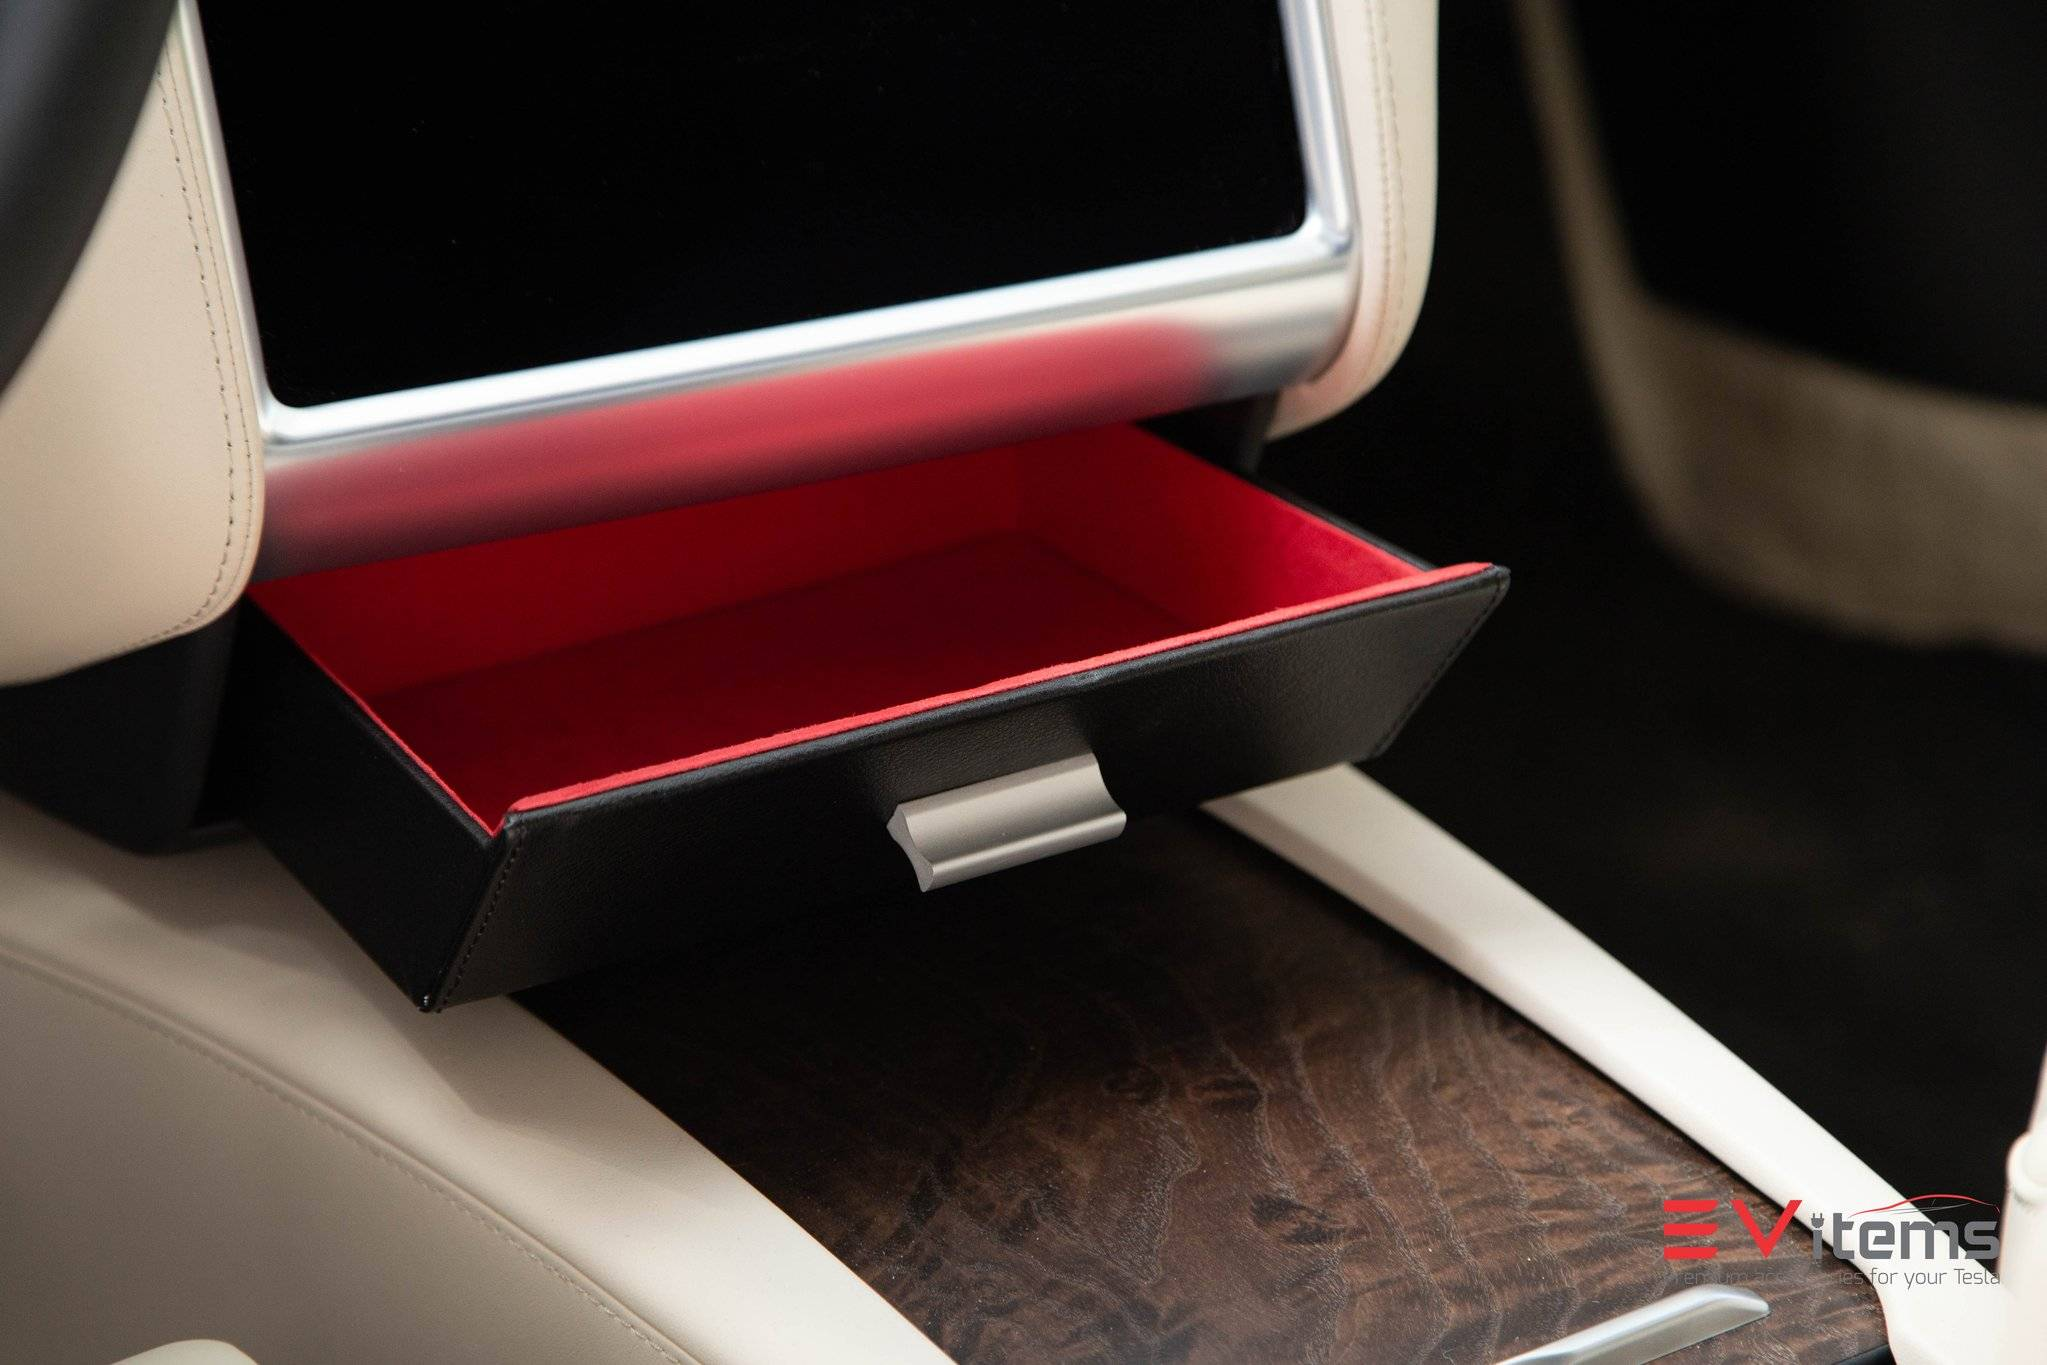 Tesla Model S Cubby Drawer, Tesla Model S Vegan Cubby Drawer, Tesla Model S Accessory